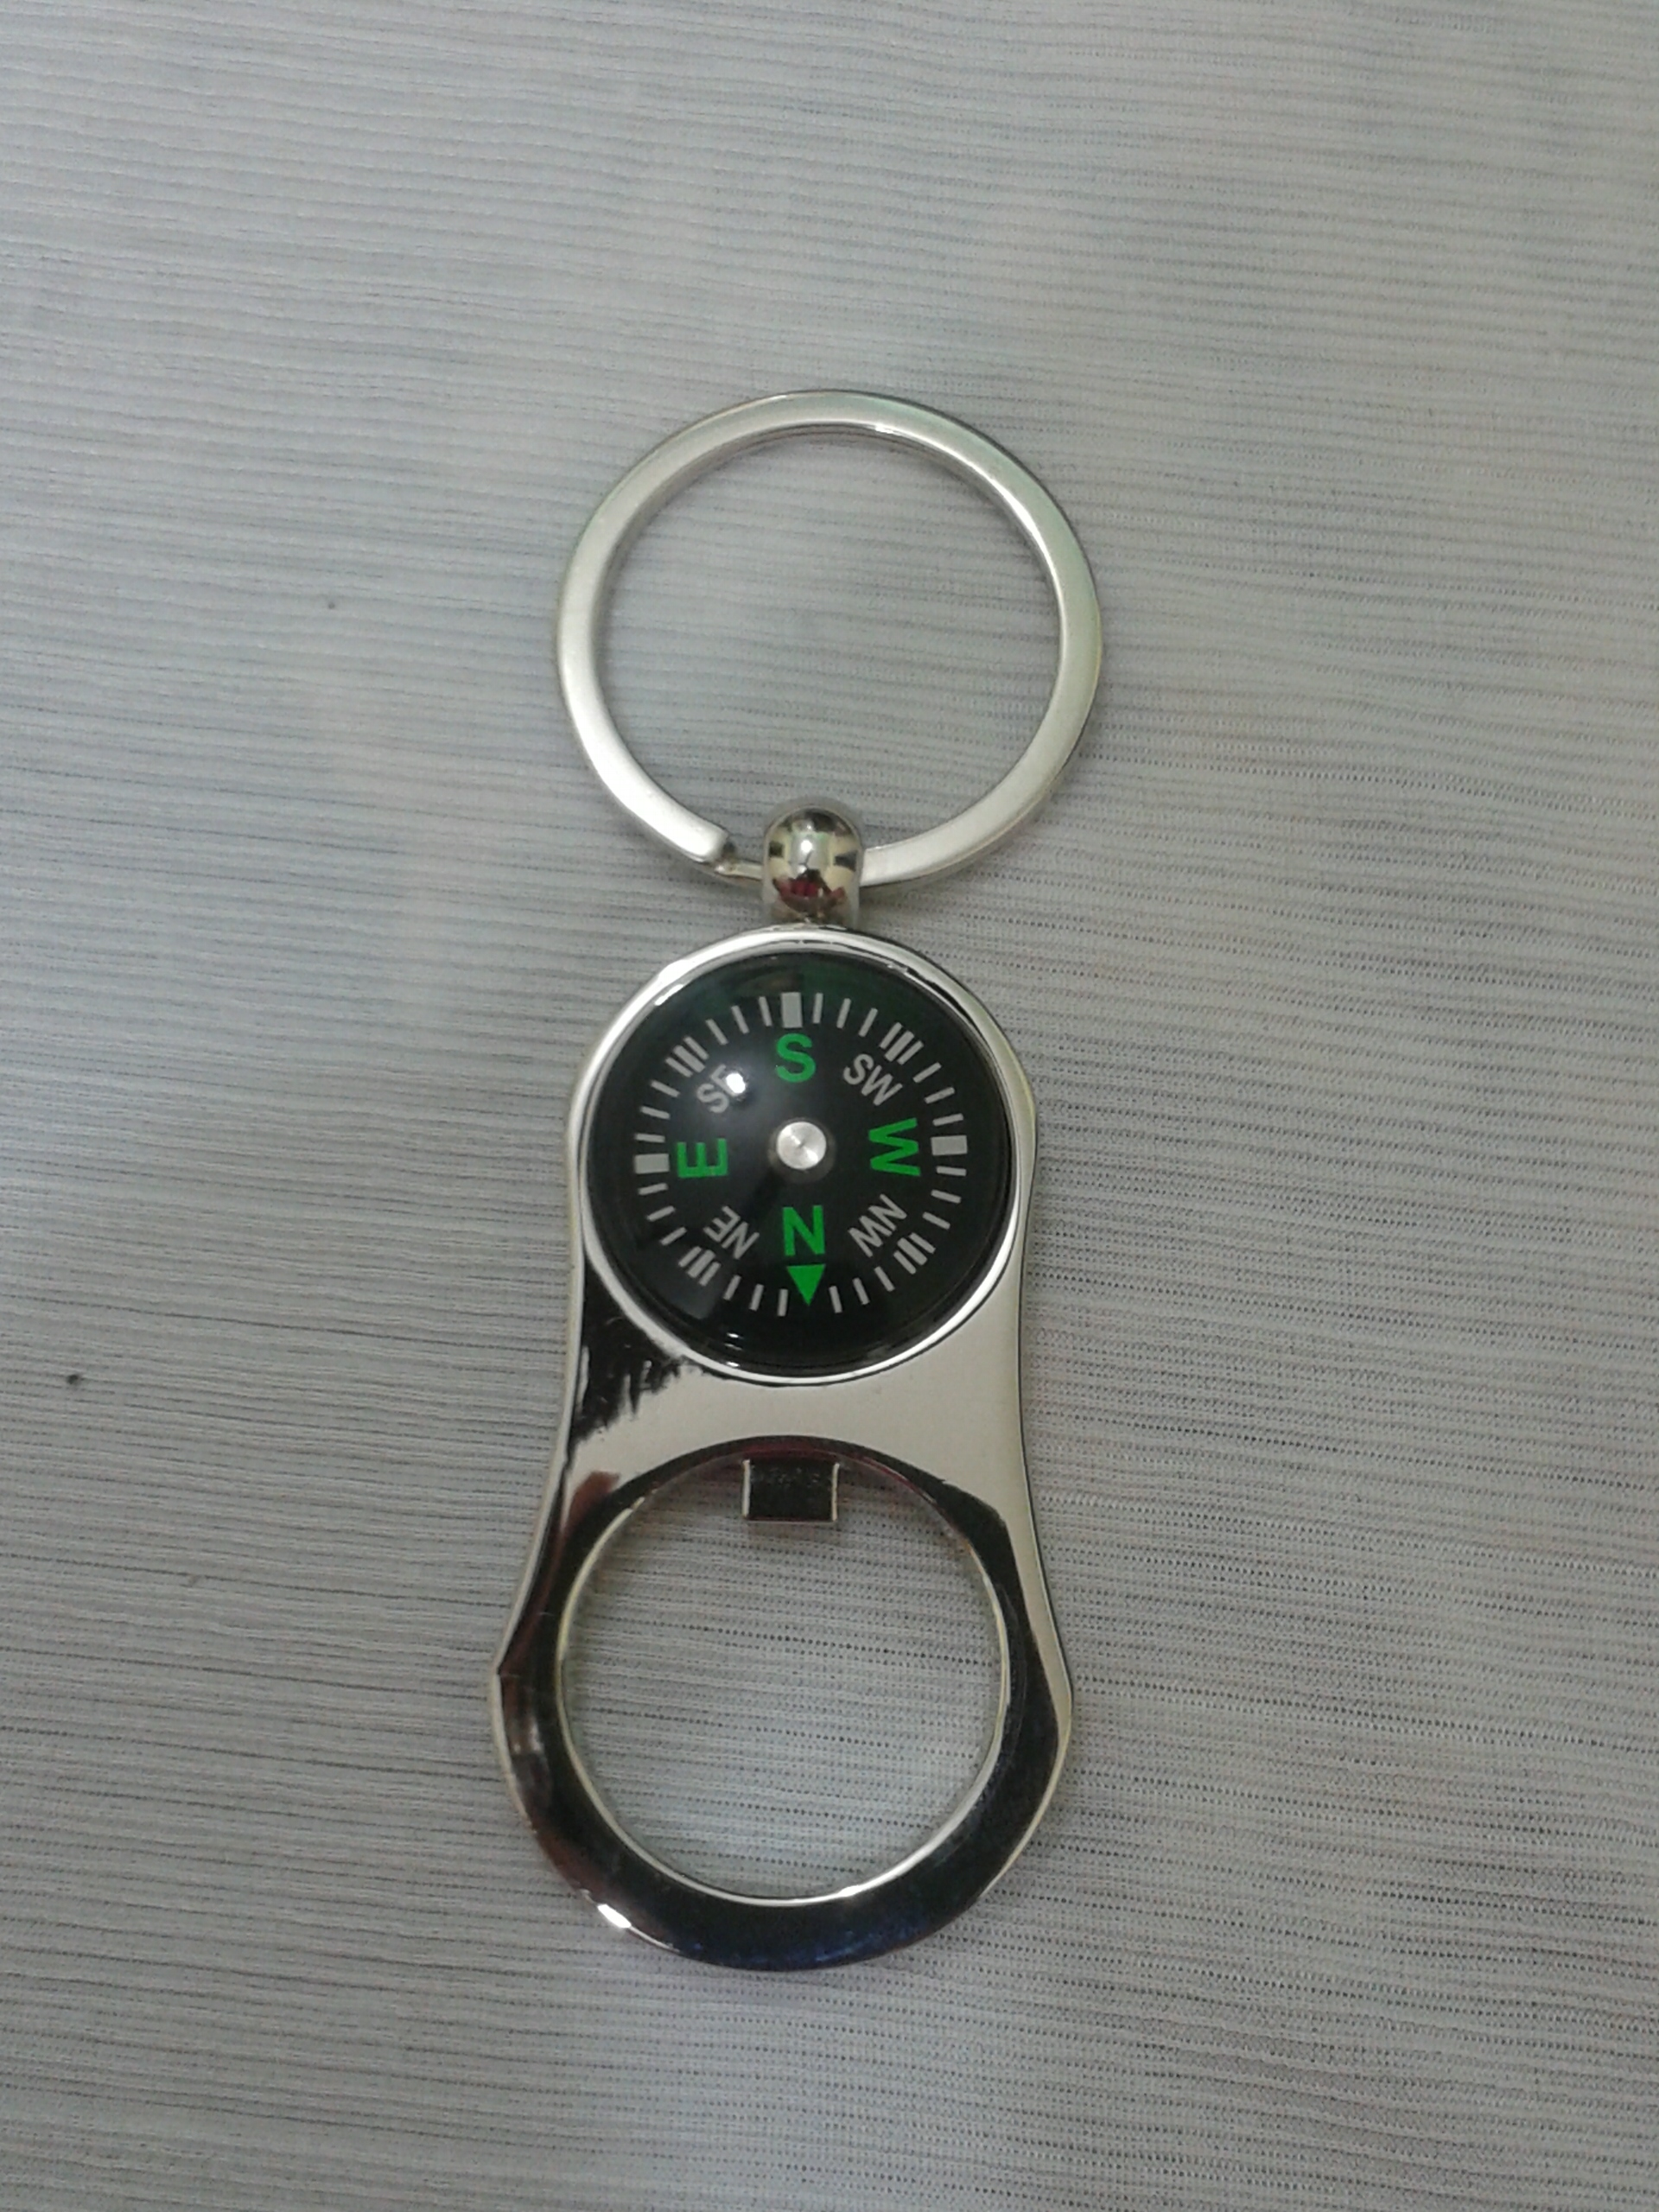 compass with bottle opener key chains for bike and home keychains. Black Bedroom Furniture Sets. Home Design Ideas